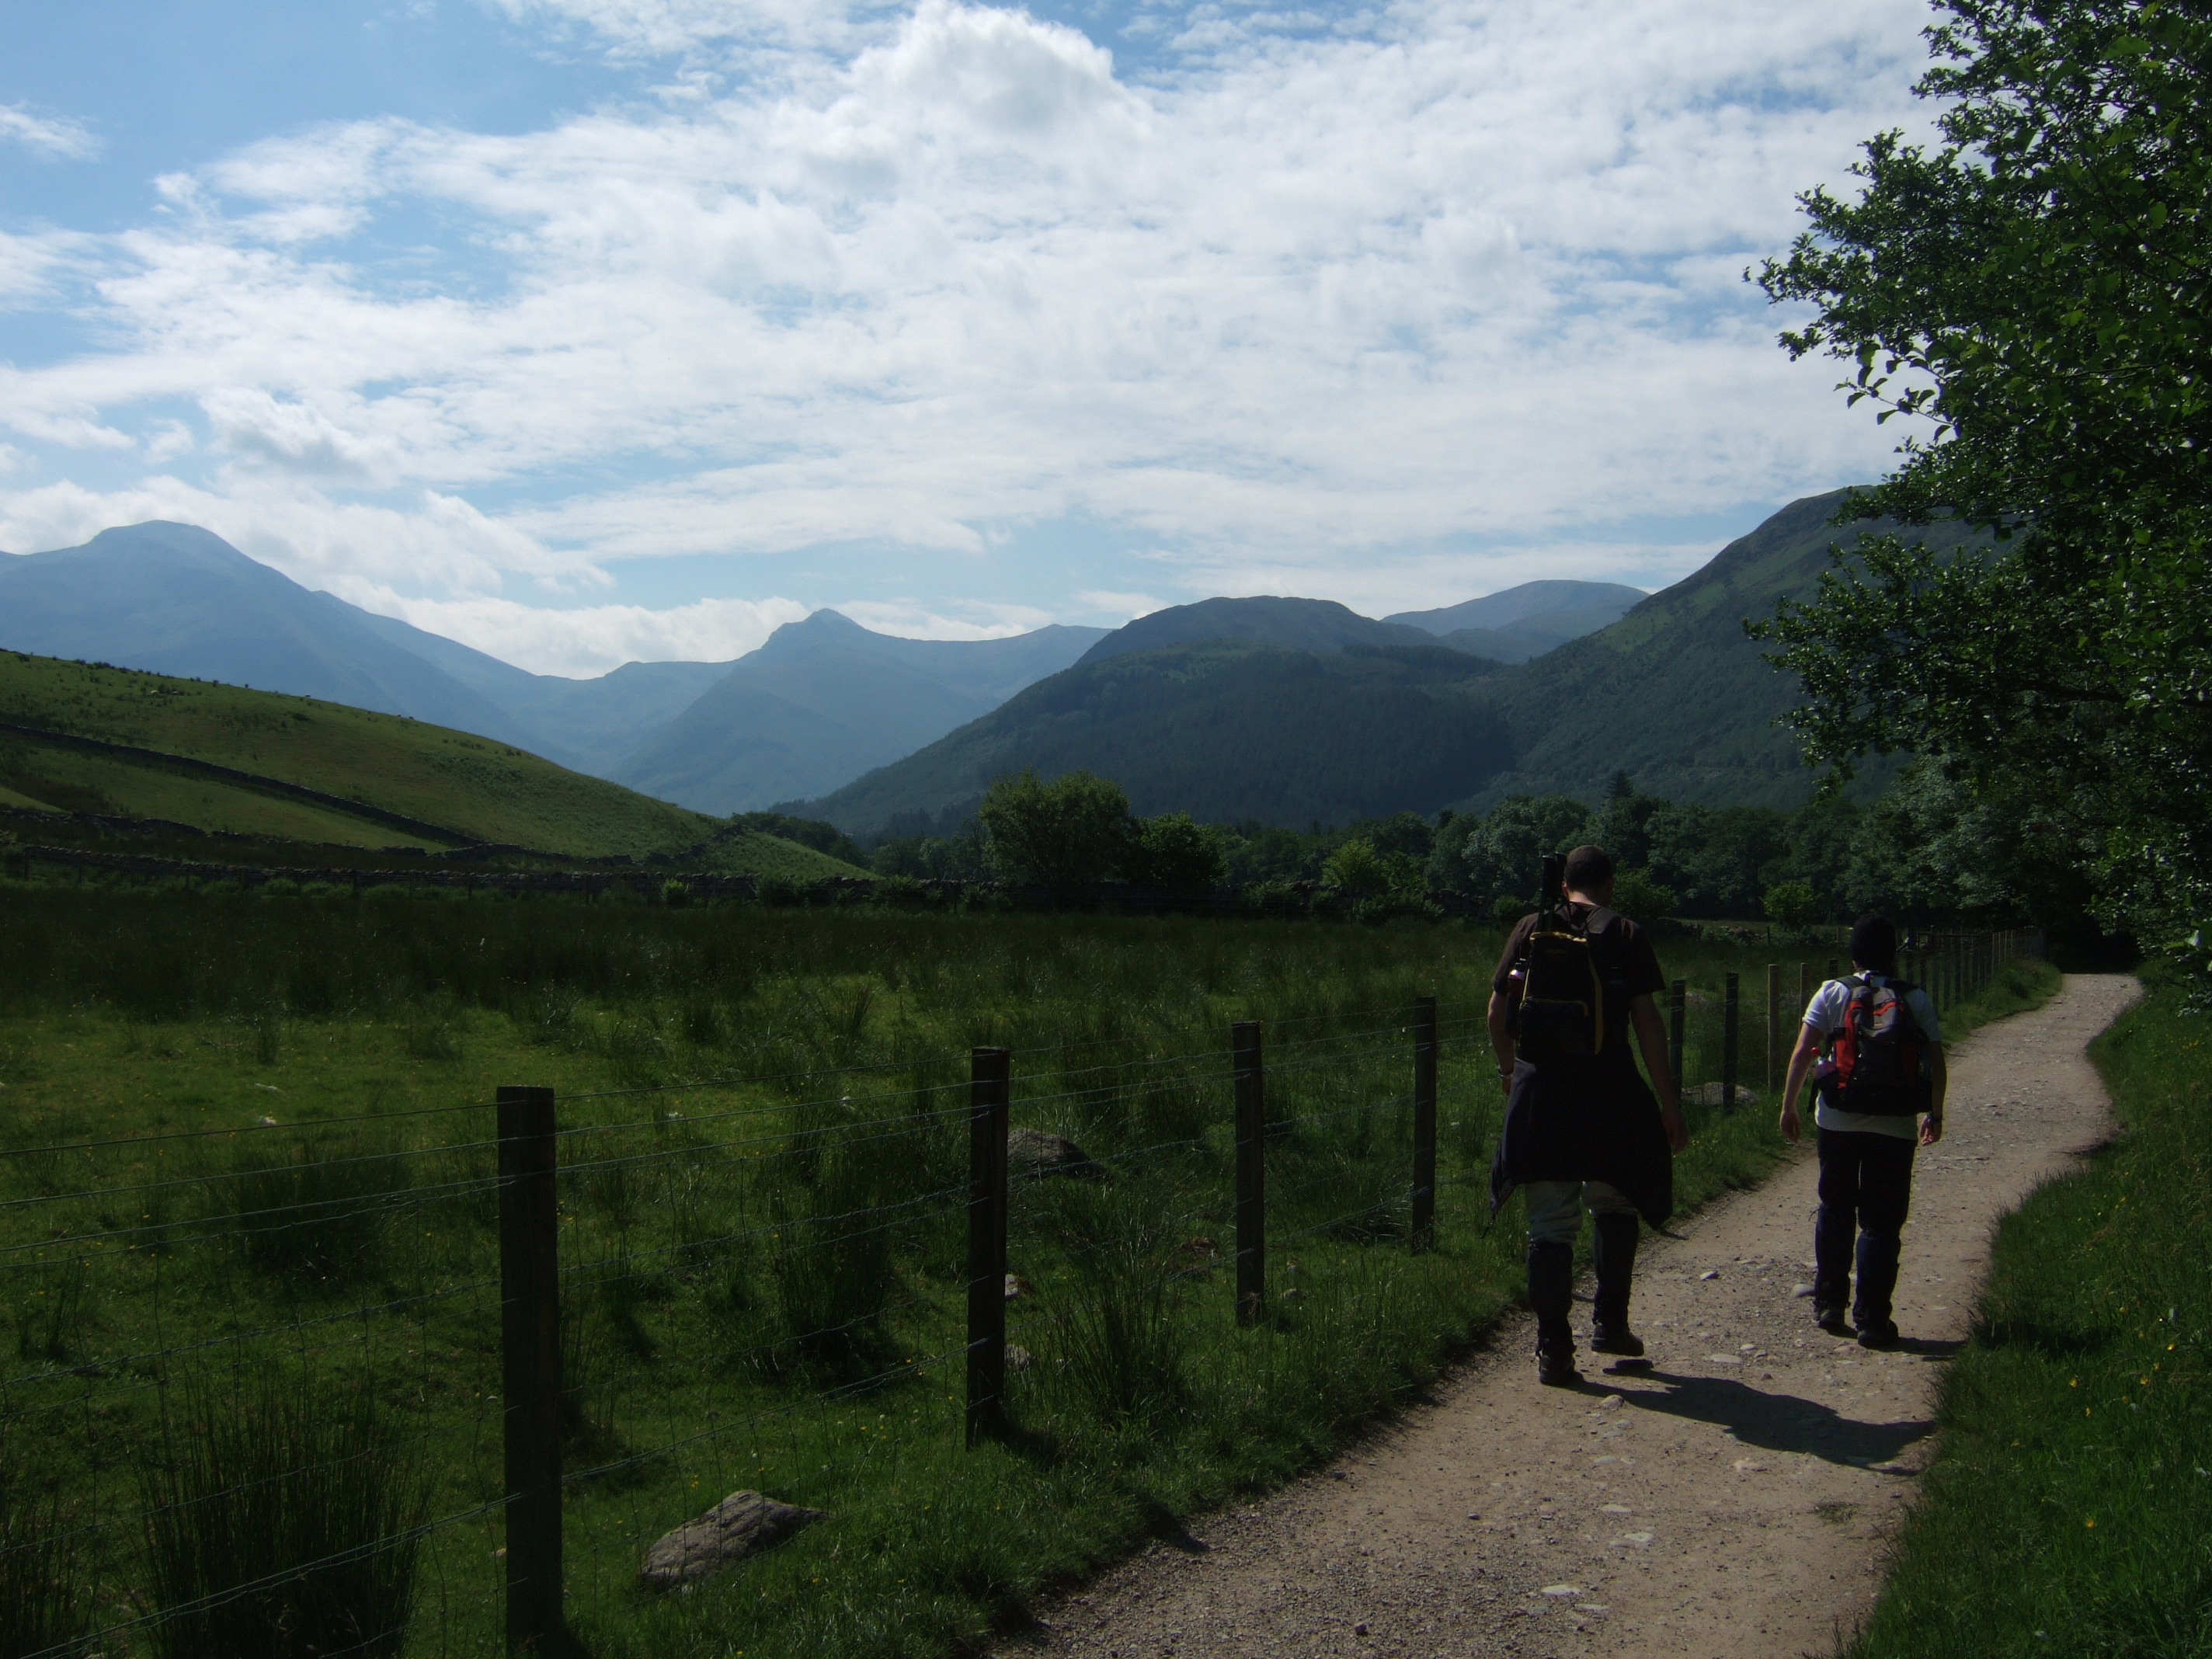 A path at the base of Ben Neivs